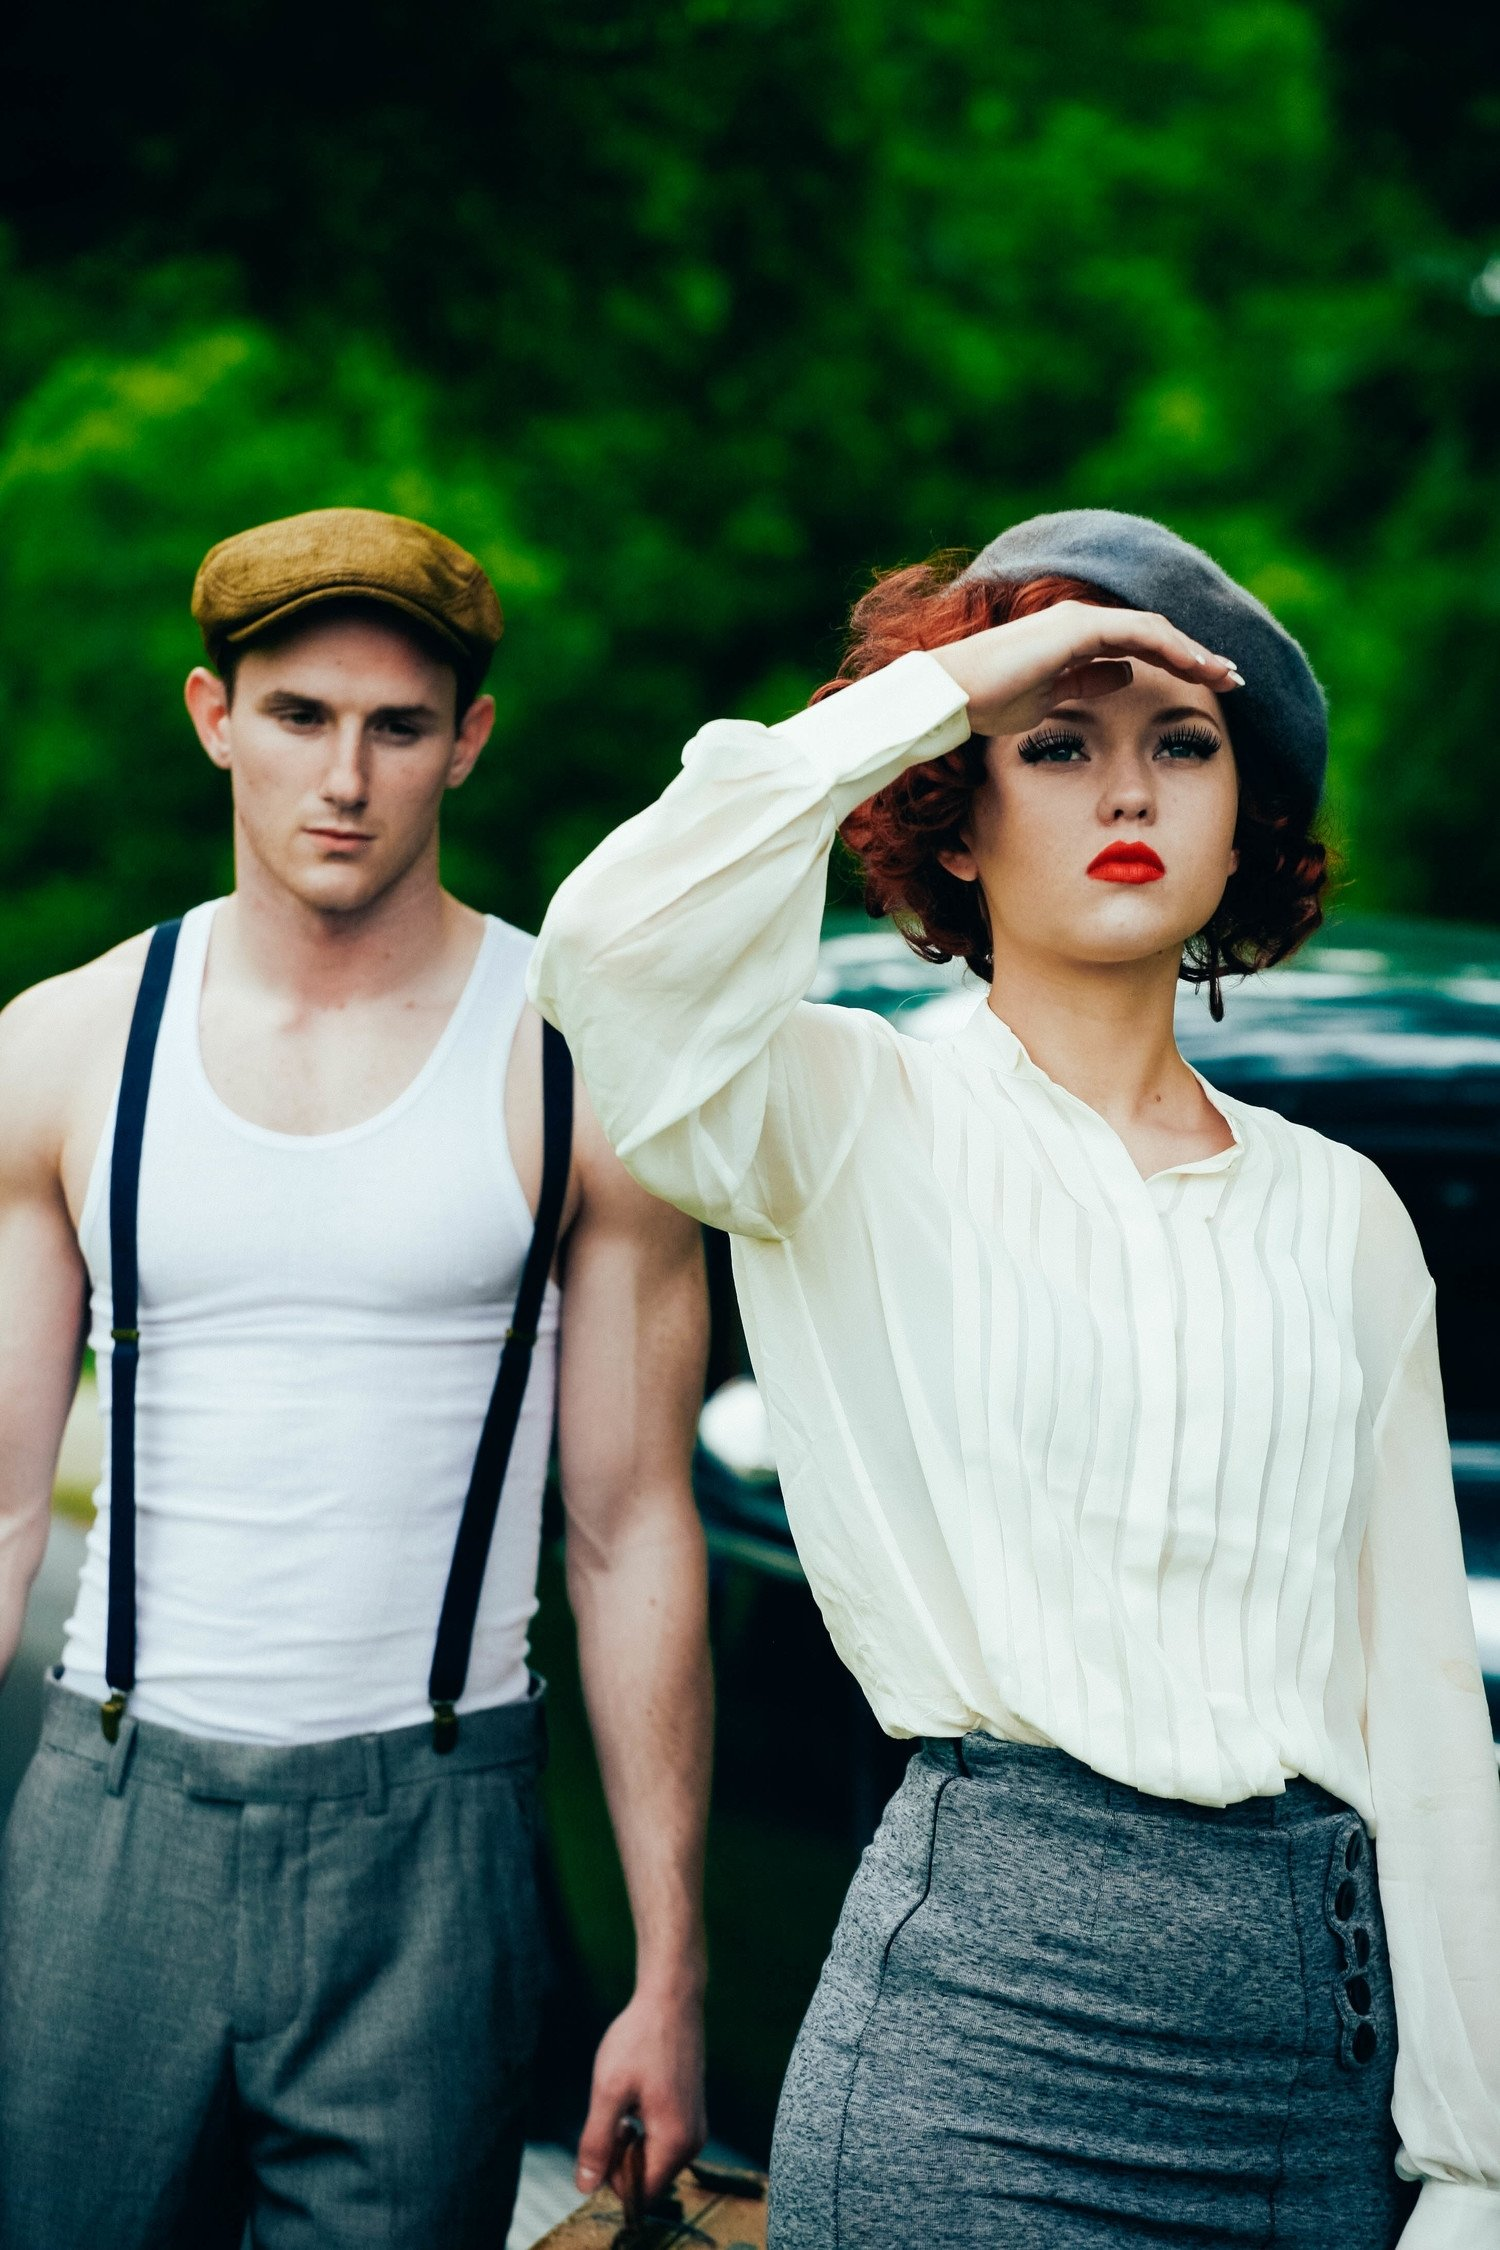 10 Most Recommended Bonnie And Clyde Costume Ideas bonnie and clyde photos google search bonnie clyde shoot 1 2020